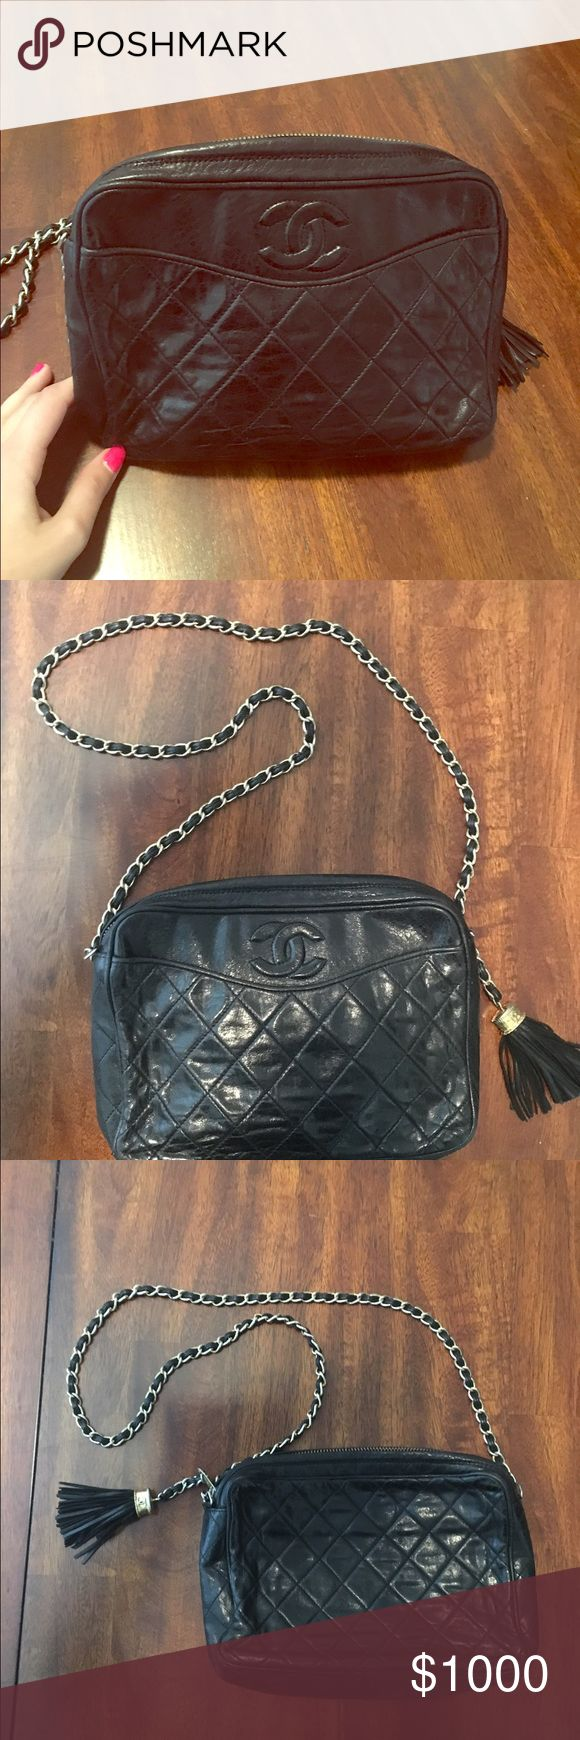 Vintage Chanel Bag Black with gold detail. Great for a night out! CHANEL Bags Crossbody Bags